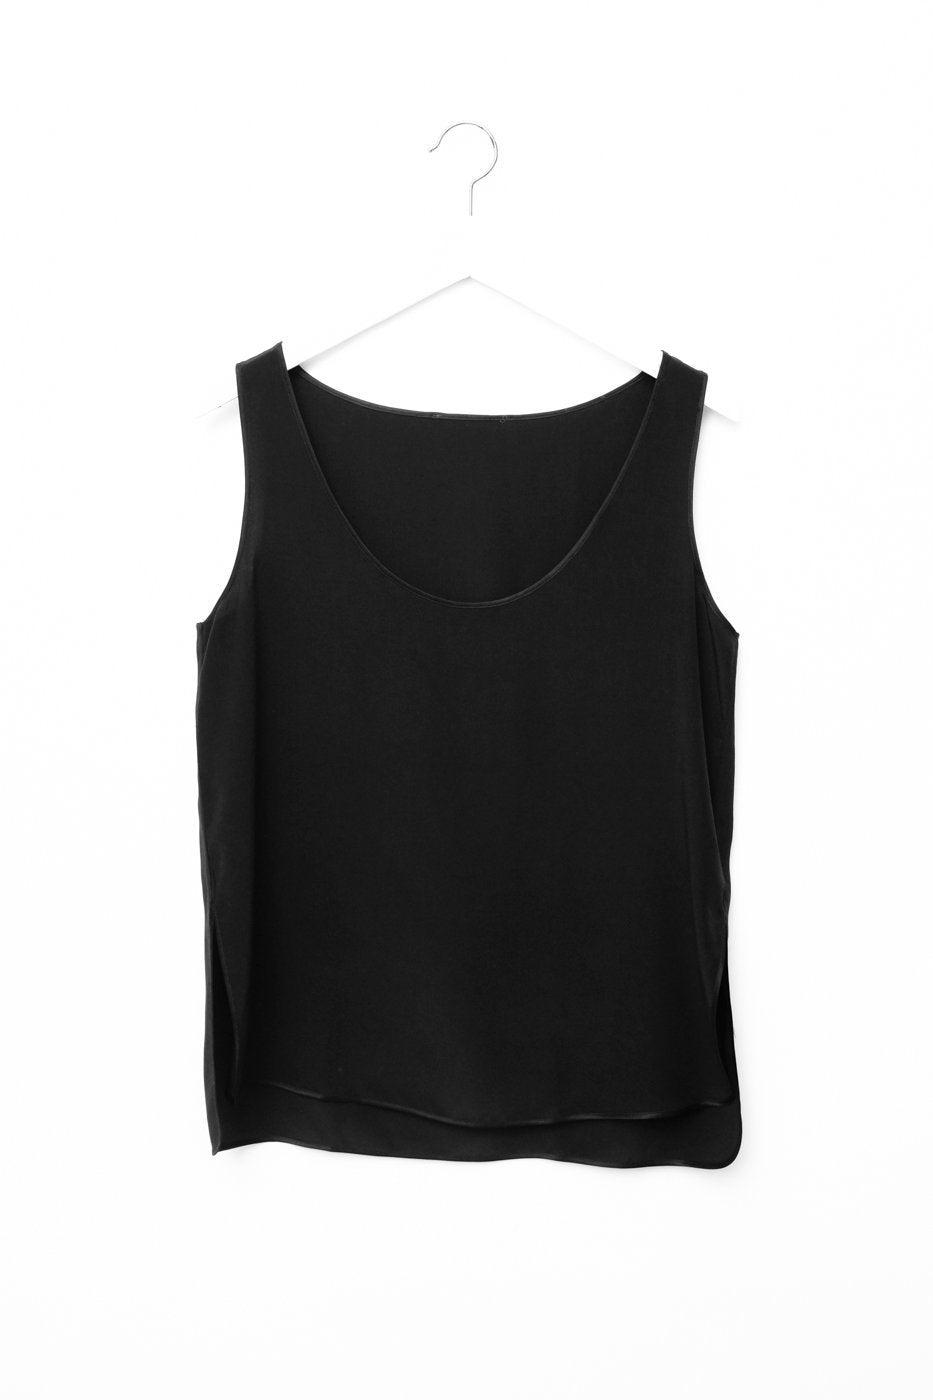 0495_SILK BLACK PURISTIC MINIMAL TOP